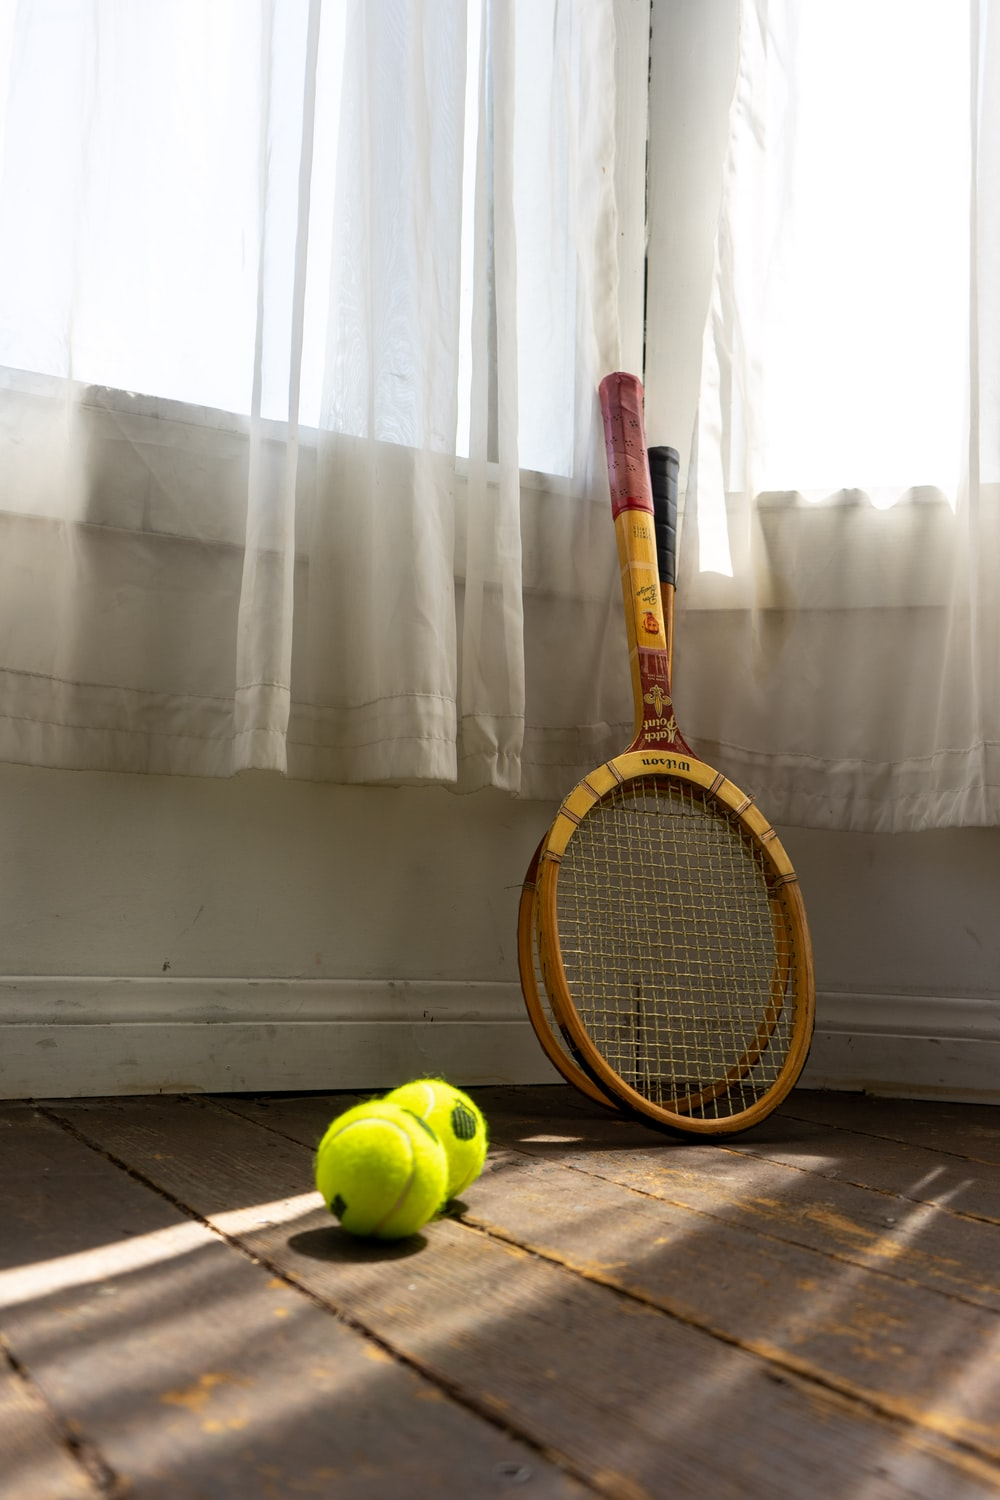 yellow and black tennis racket